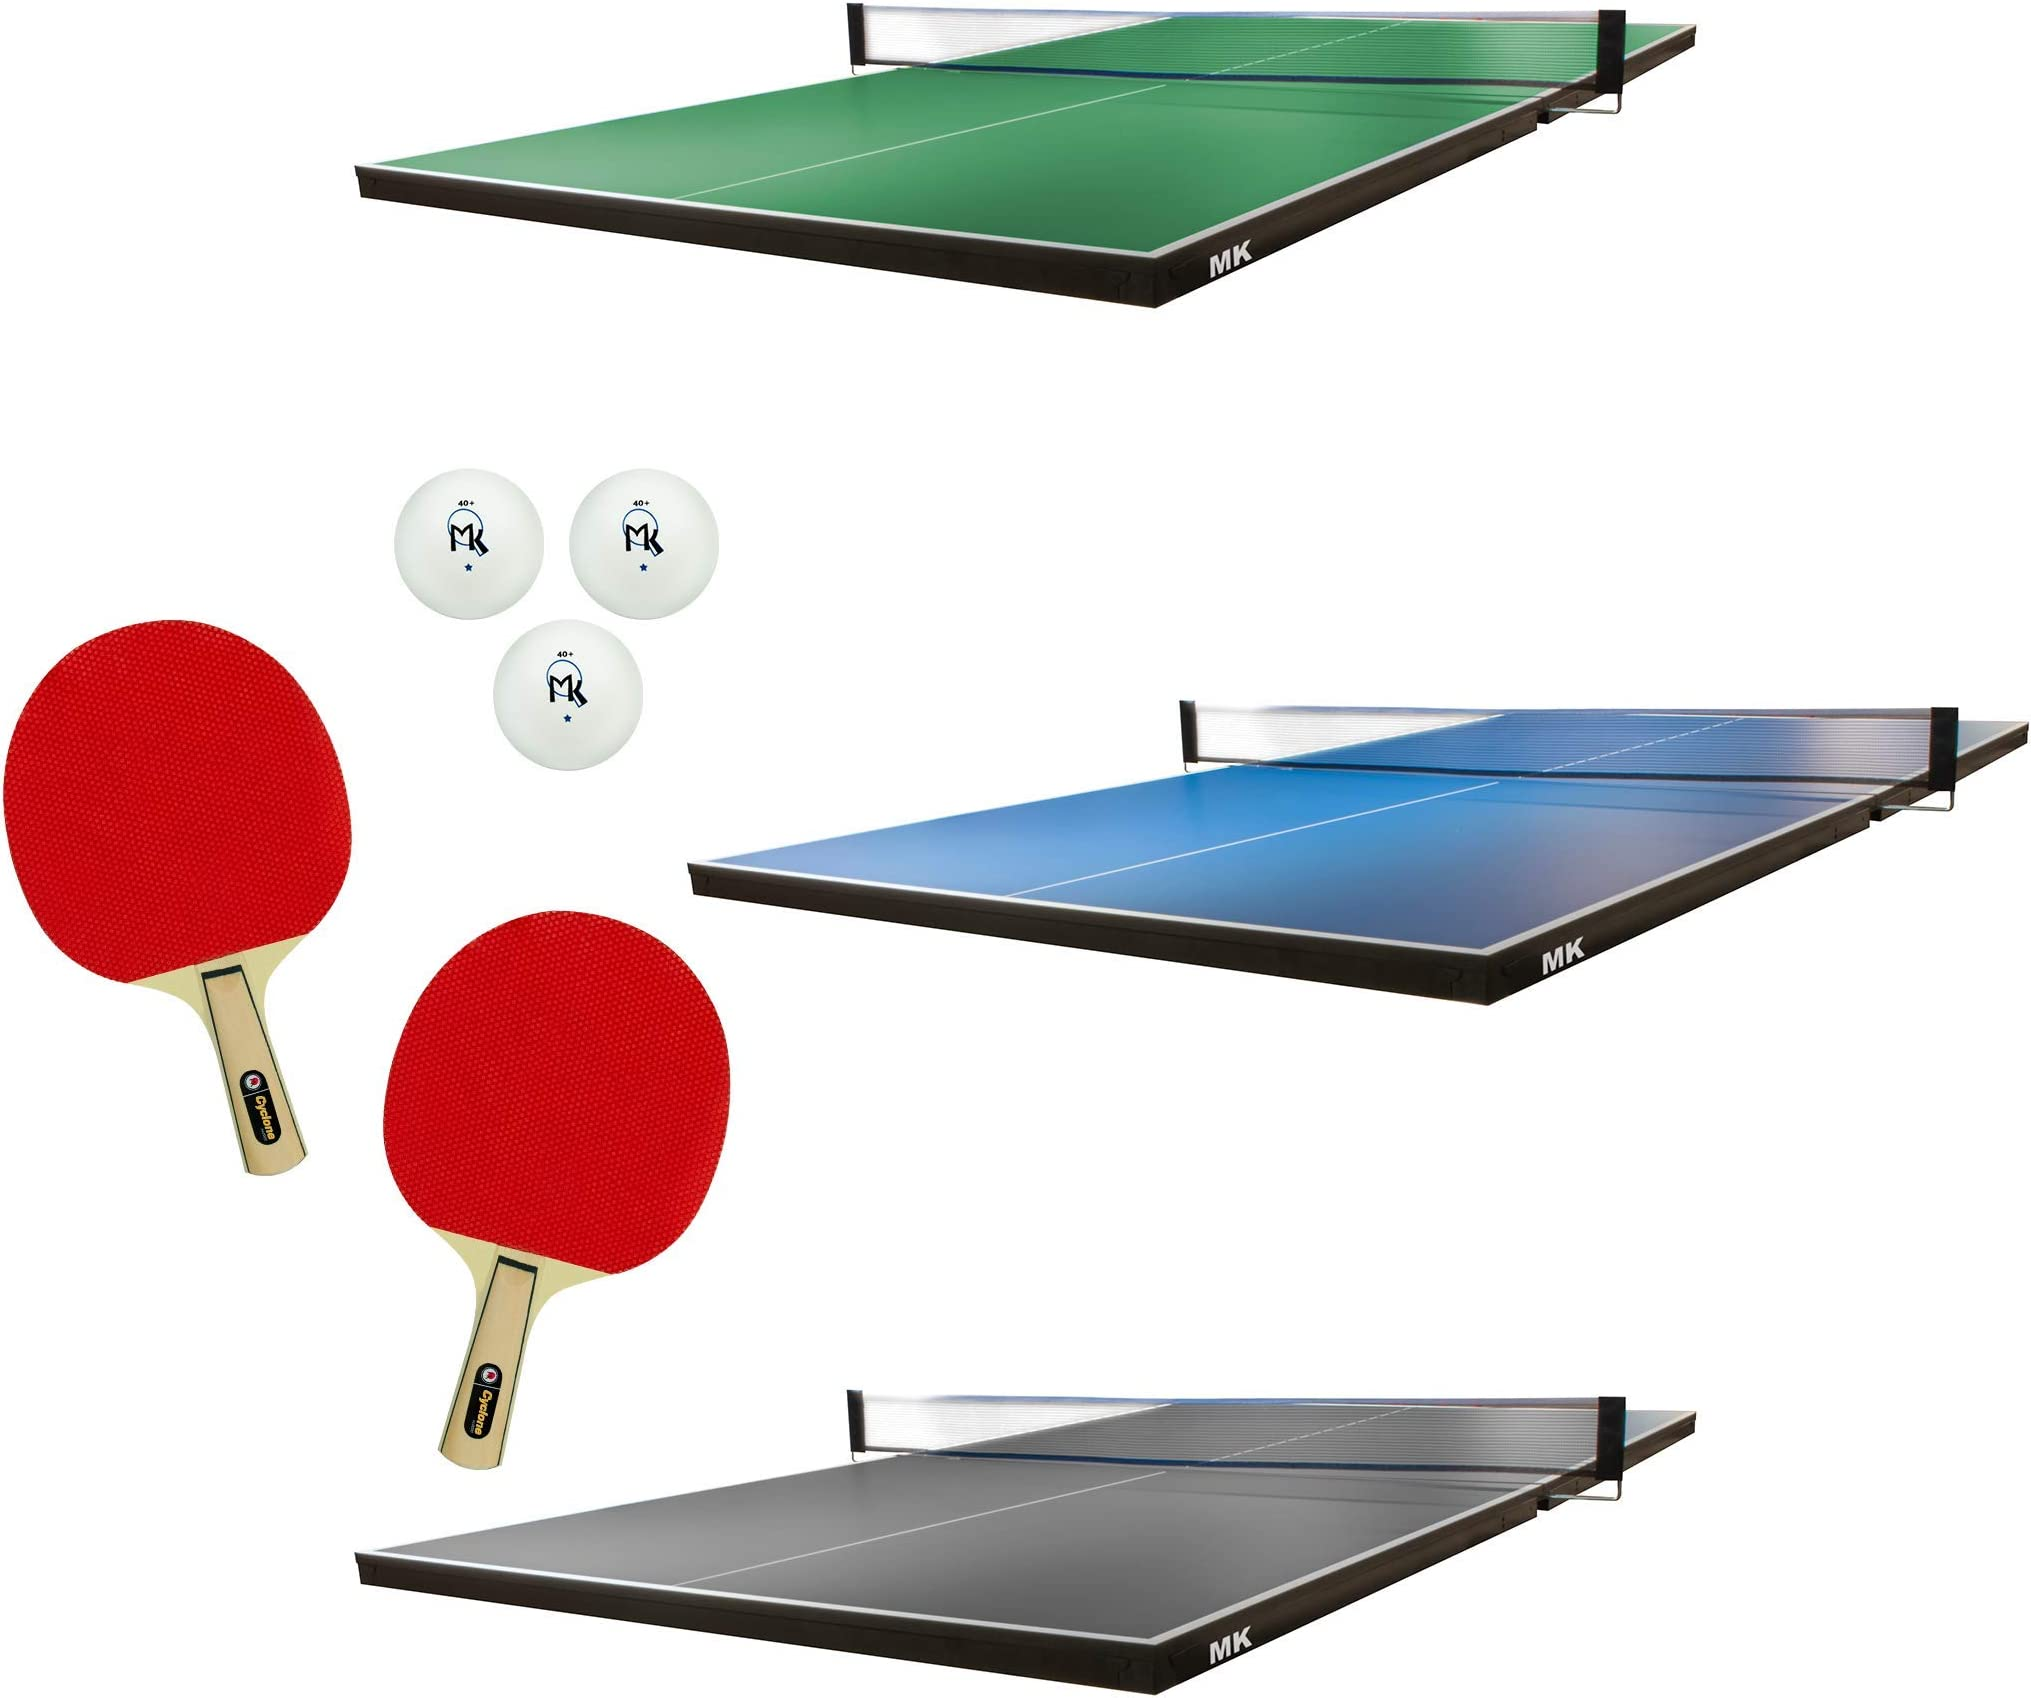 Martin Kilpatrick Ping Pong Table for Billiard Table | Conversion Table Tennis Game Table | Table Tennis Table with Ping Pong Paddle Set | Conversion Top for Pool Table Games | Ping Pong Table Top